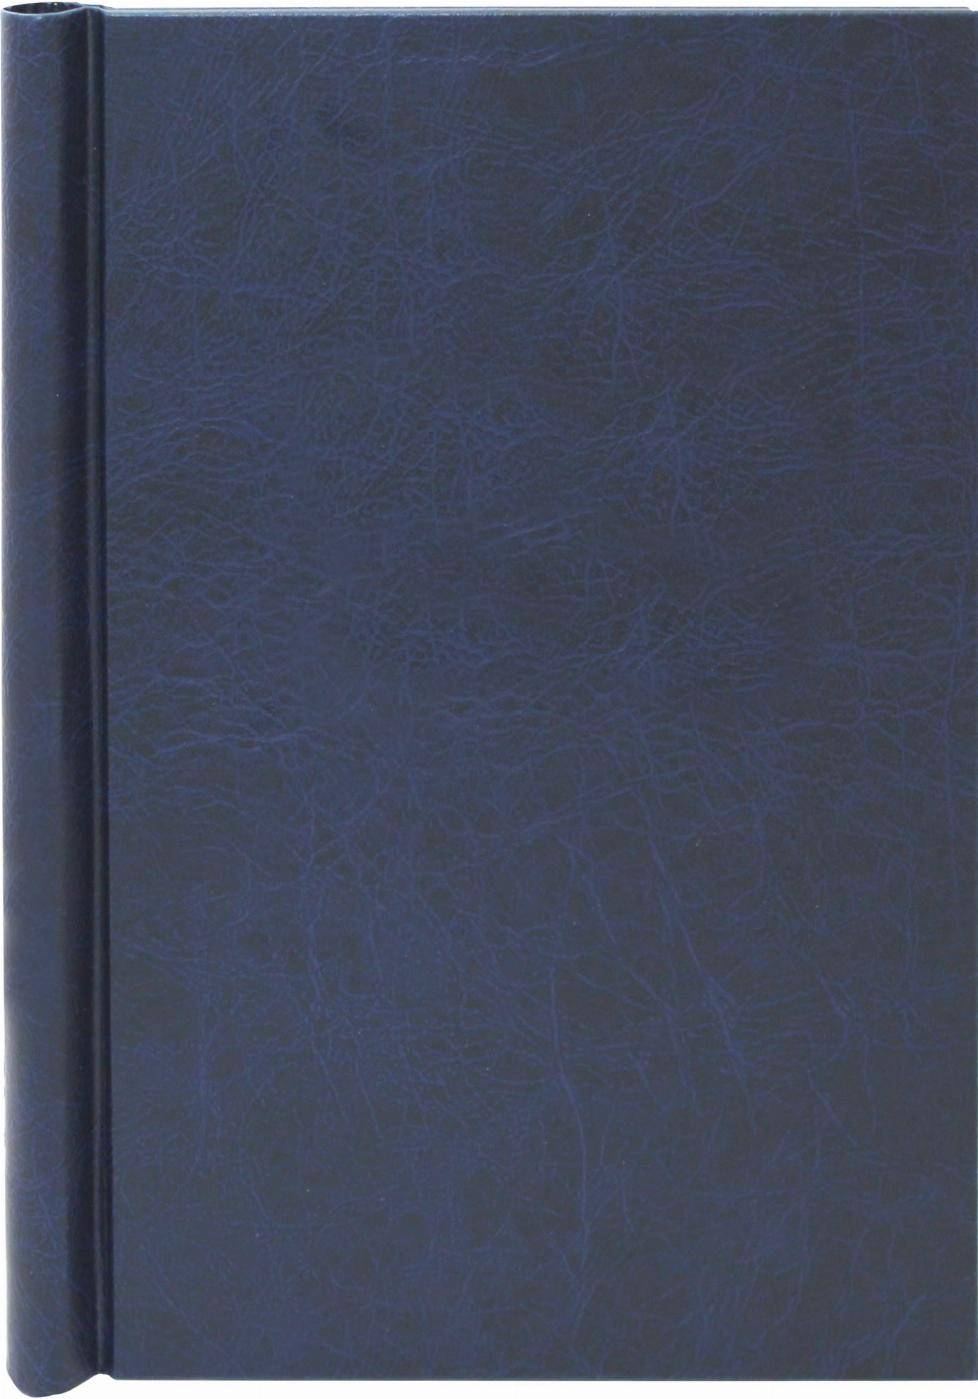 A4 Blue Leather Effect Family History Springback Binder - Untitled